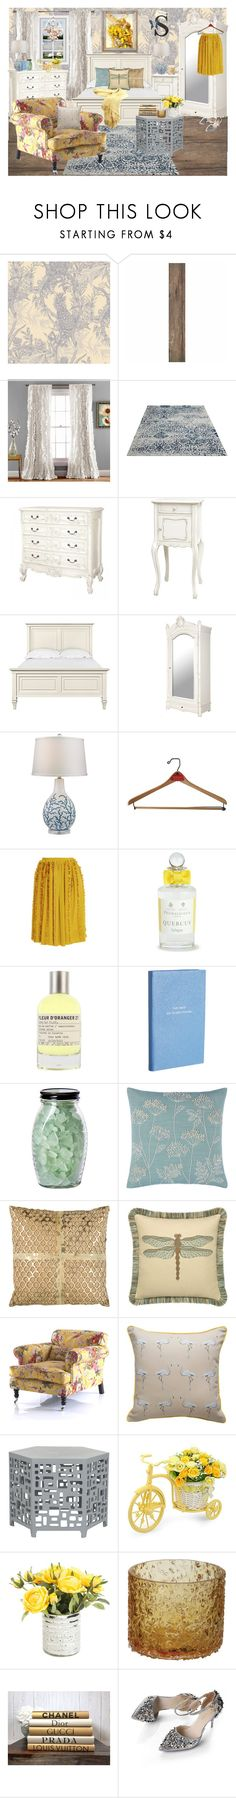 """""""Serena"""" by sailorgirl ❤ liked on Polyvore featuring interior, interiors, interior design, home, home decor, interior decorating, Timorous Beasties, ELK Lighting, Rochas and Lalique"""